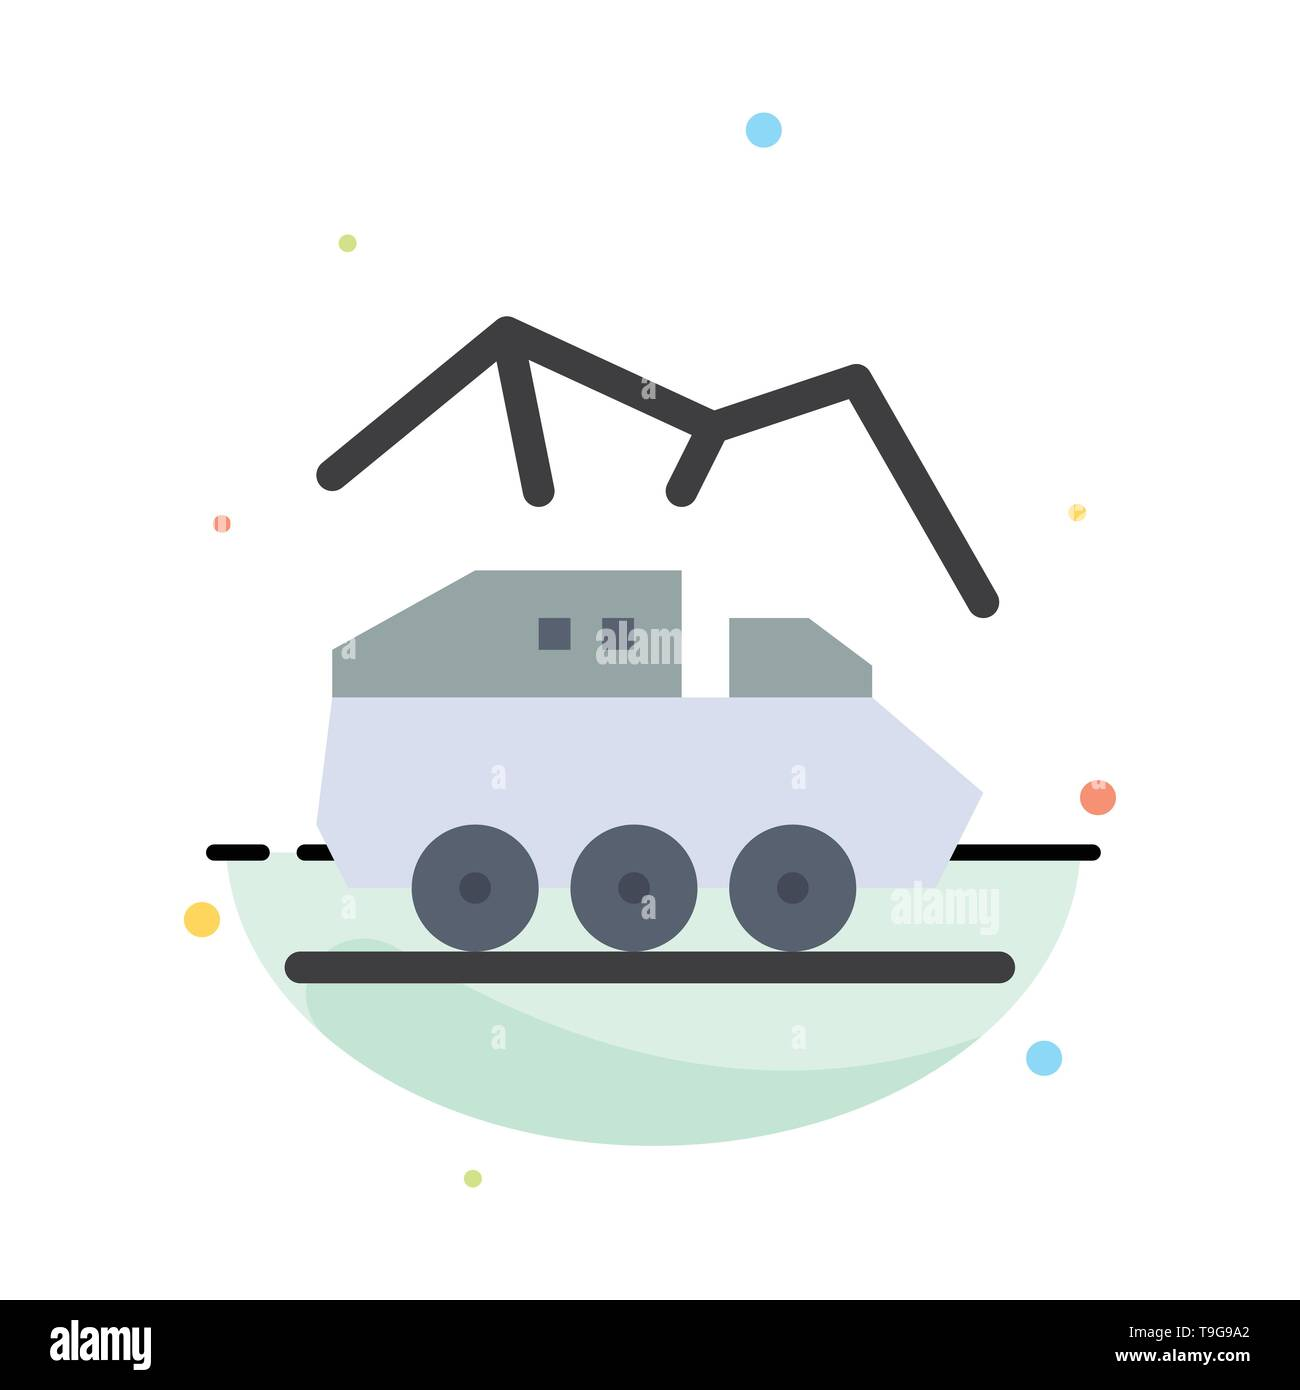 Exploration, Planet, Rover, Surface, Transport Abstract Flat Color Icon Template - Stock Image